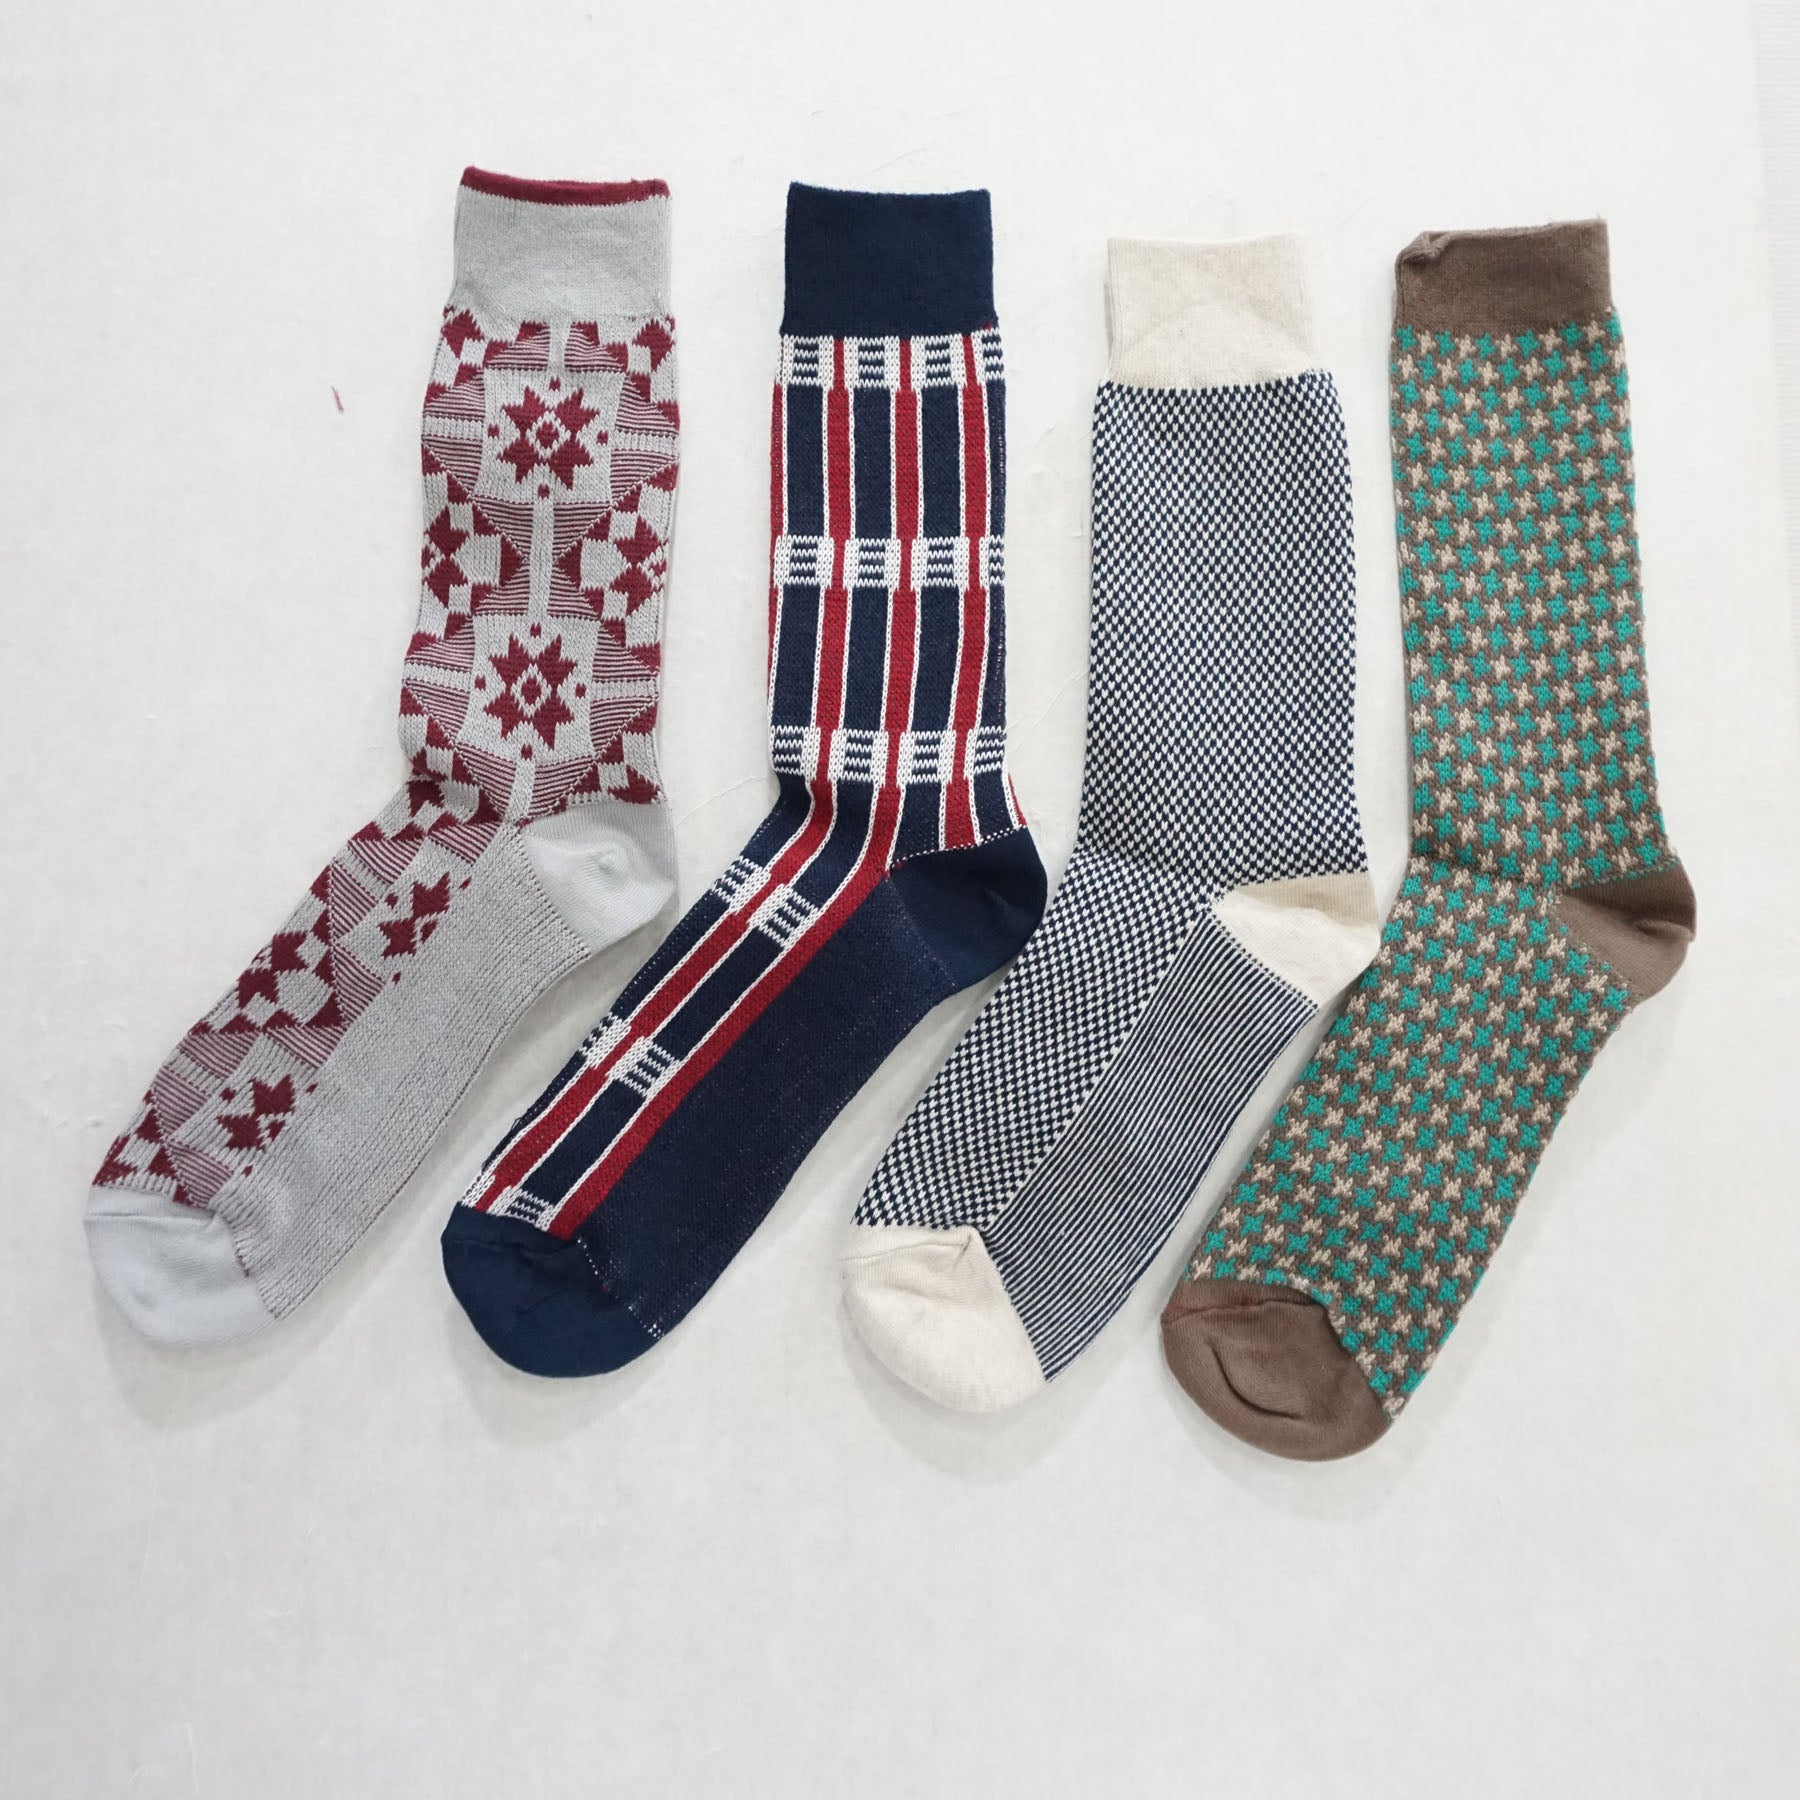 4Pack Men's Winter Casual Warm Knit Dress Socks